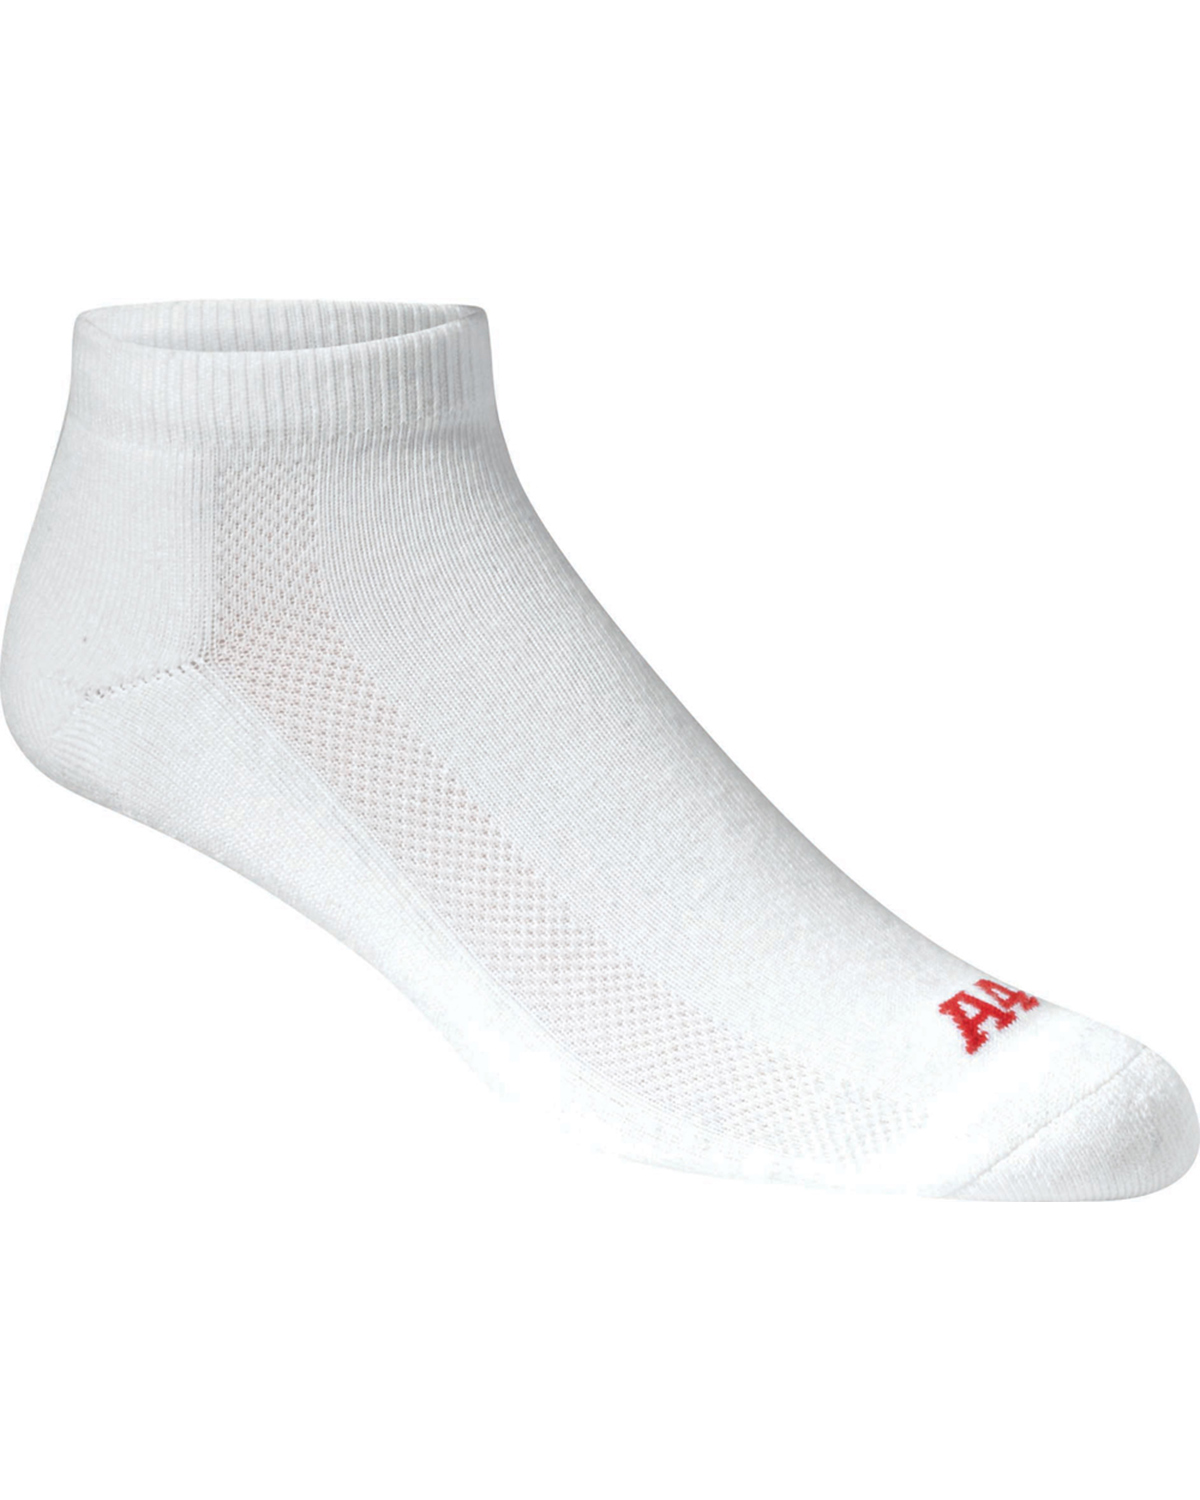 A4 S8002 - Performance Low Cut Socks